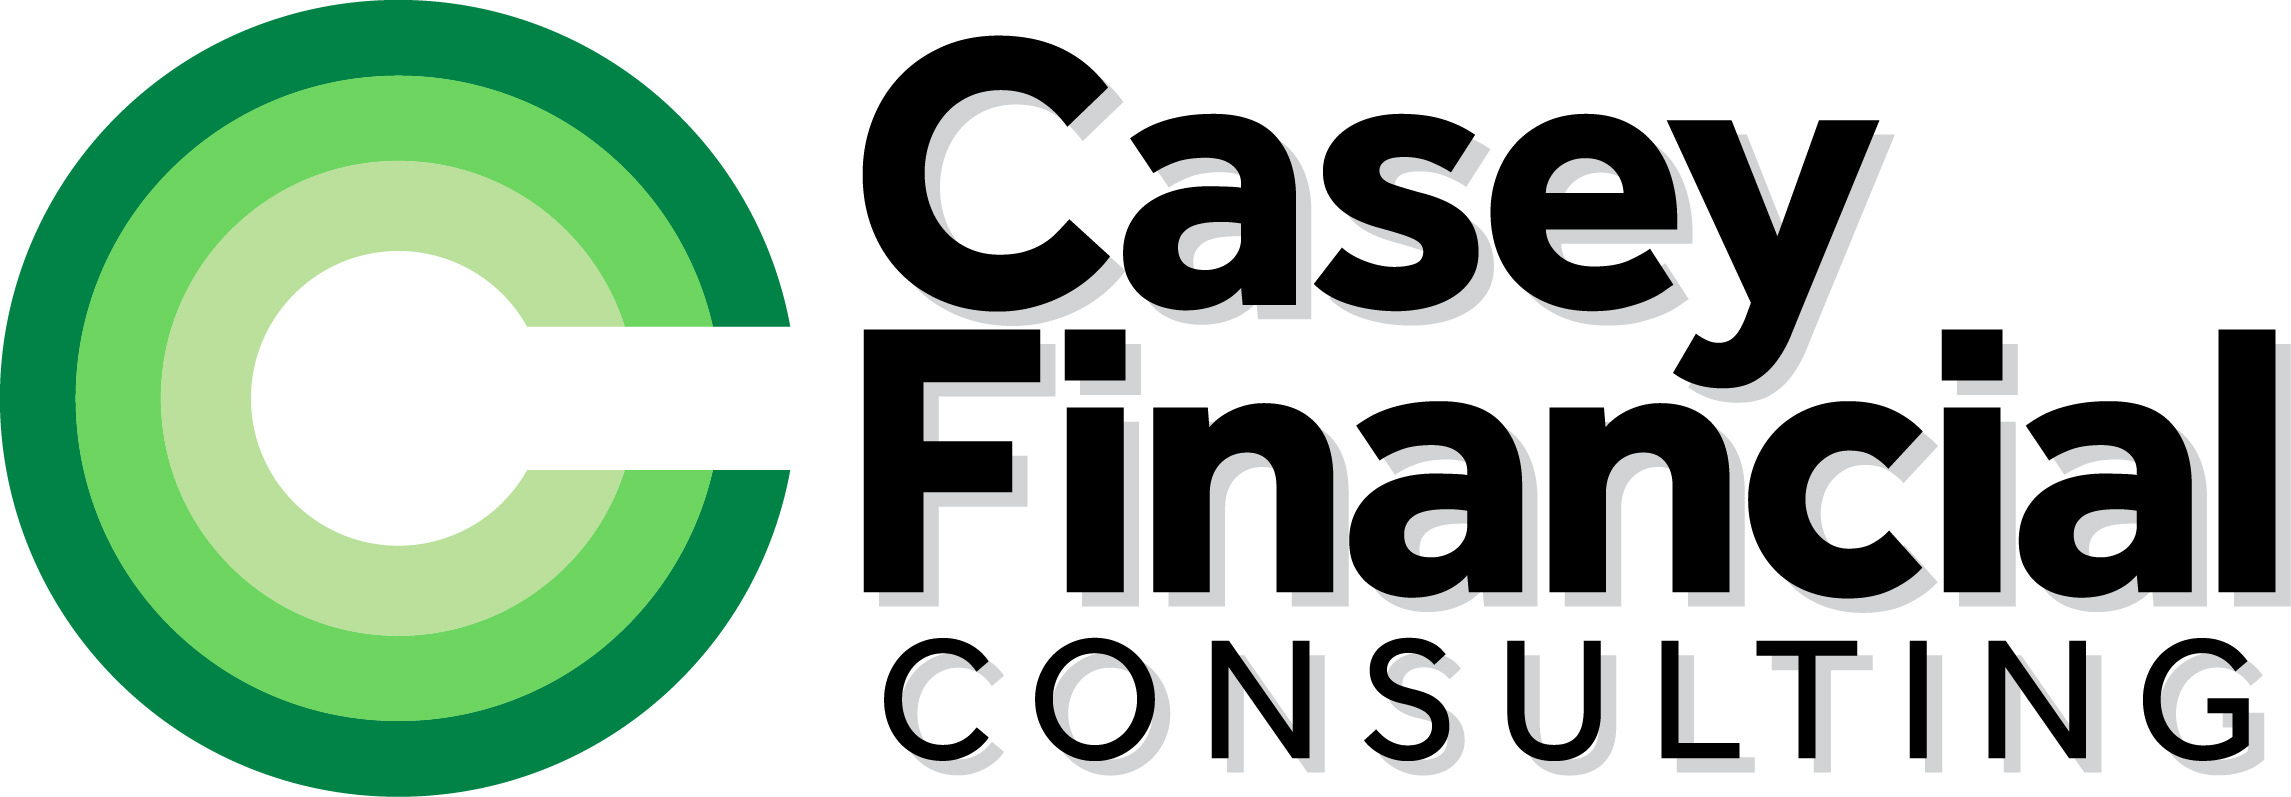 Casey Financial Consulting